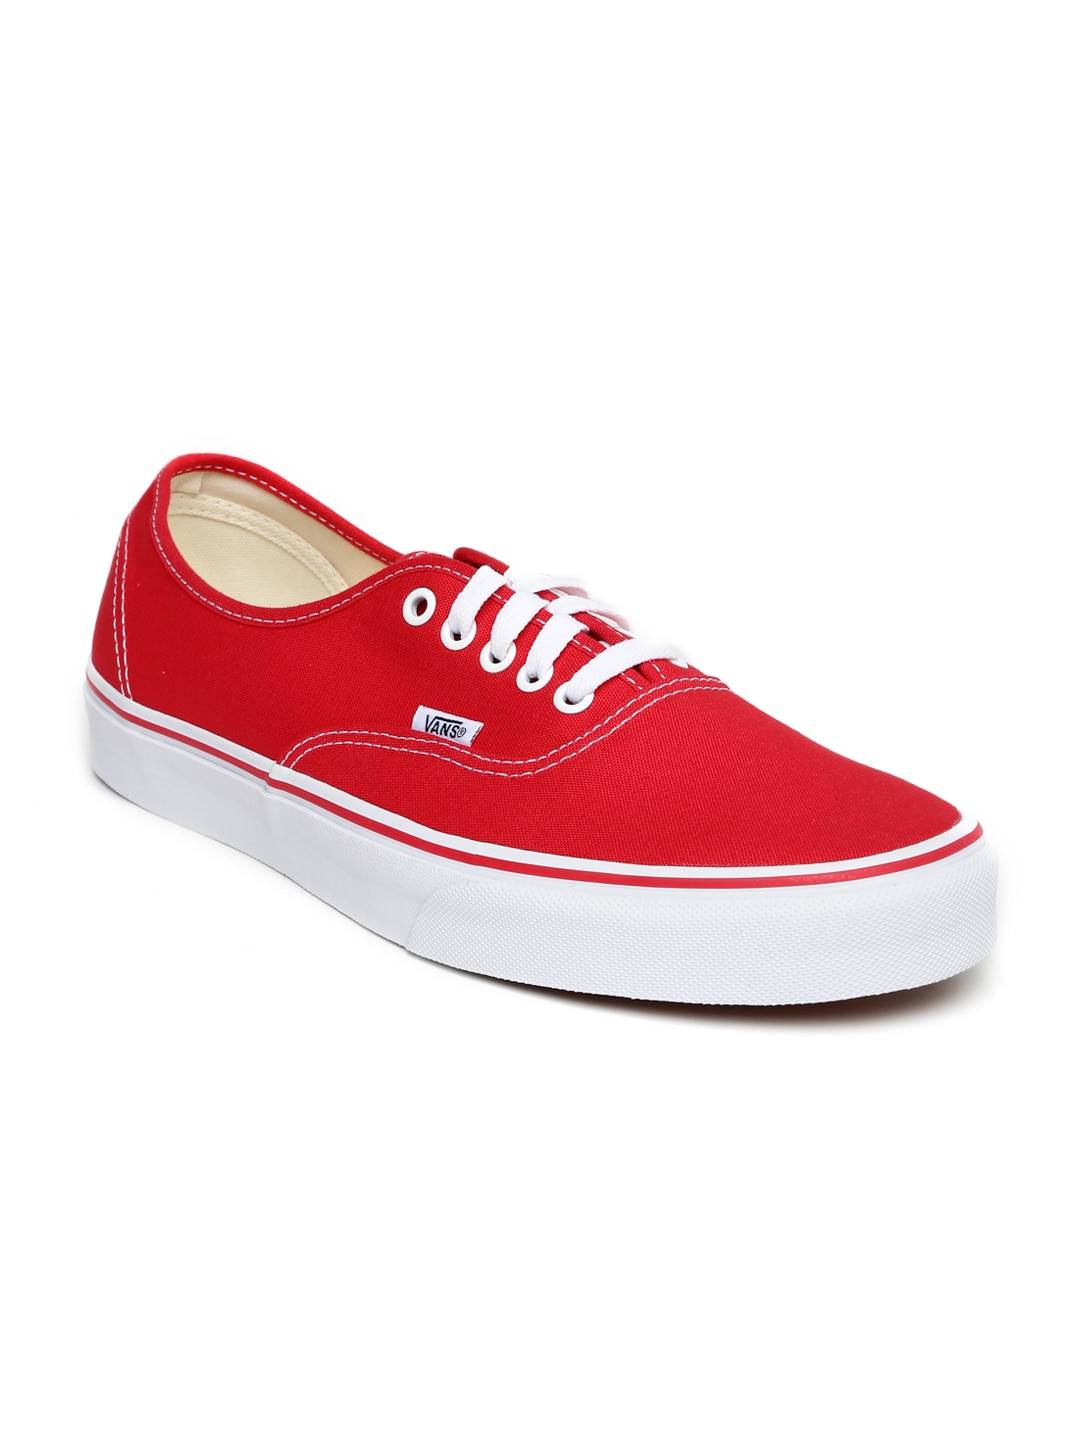 dbbbb889a54b Vans Red Shoes - Buy Vans Red Shoes online in India